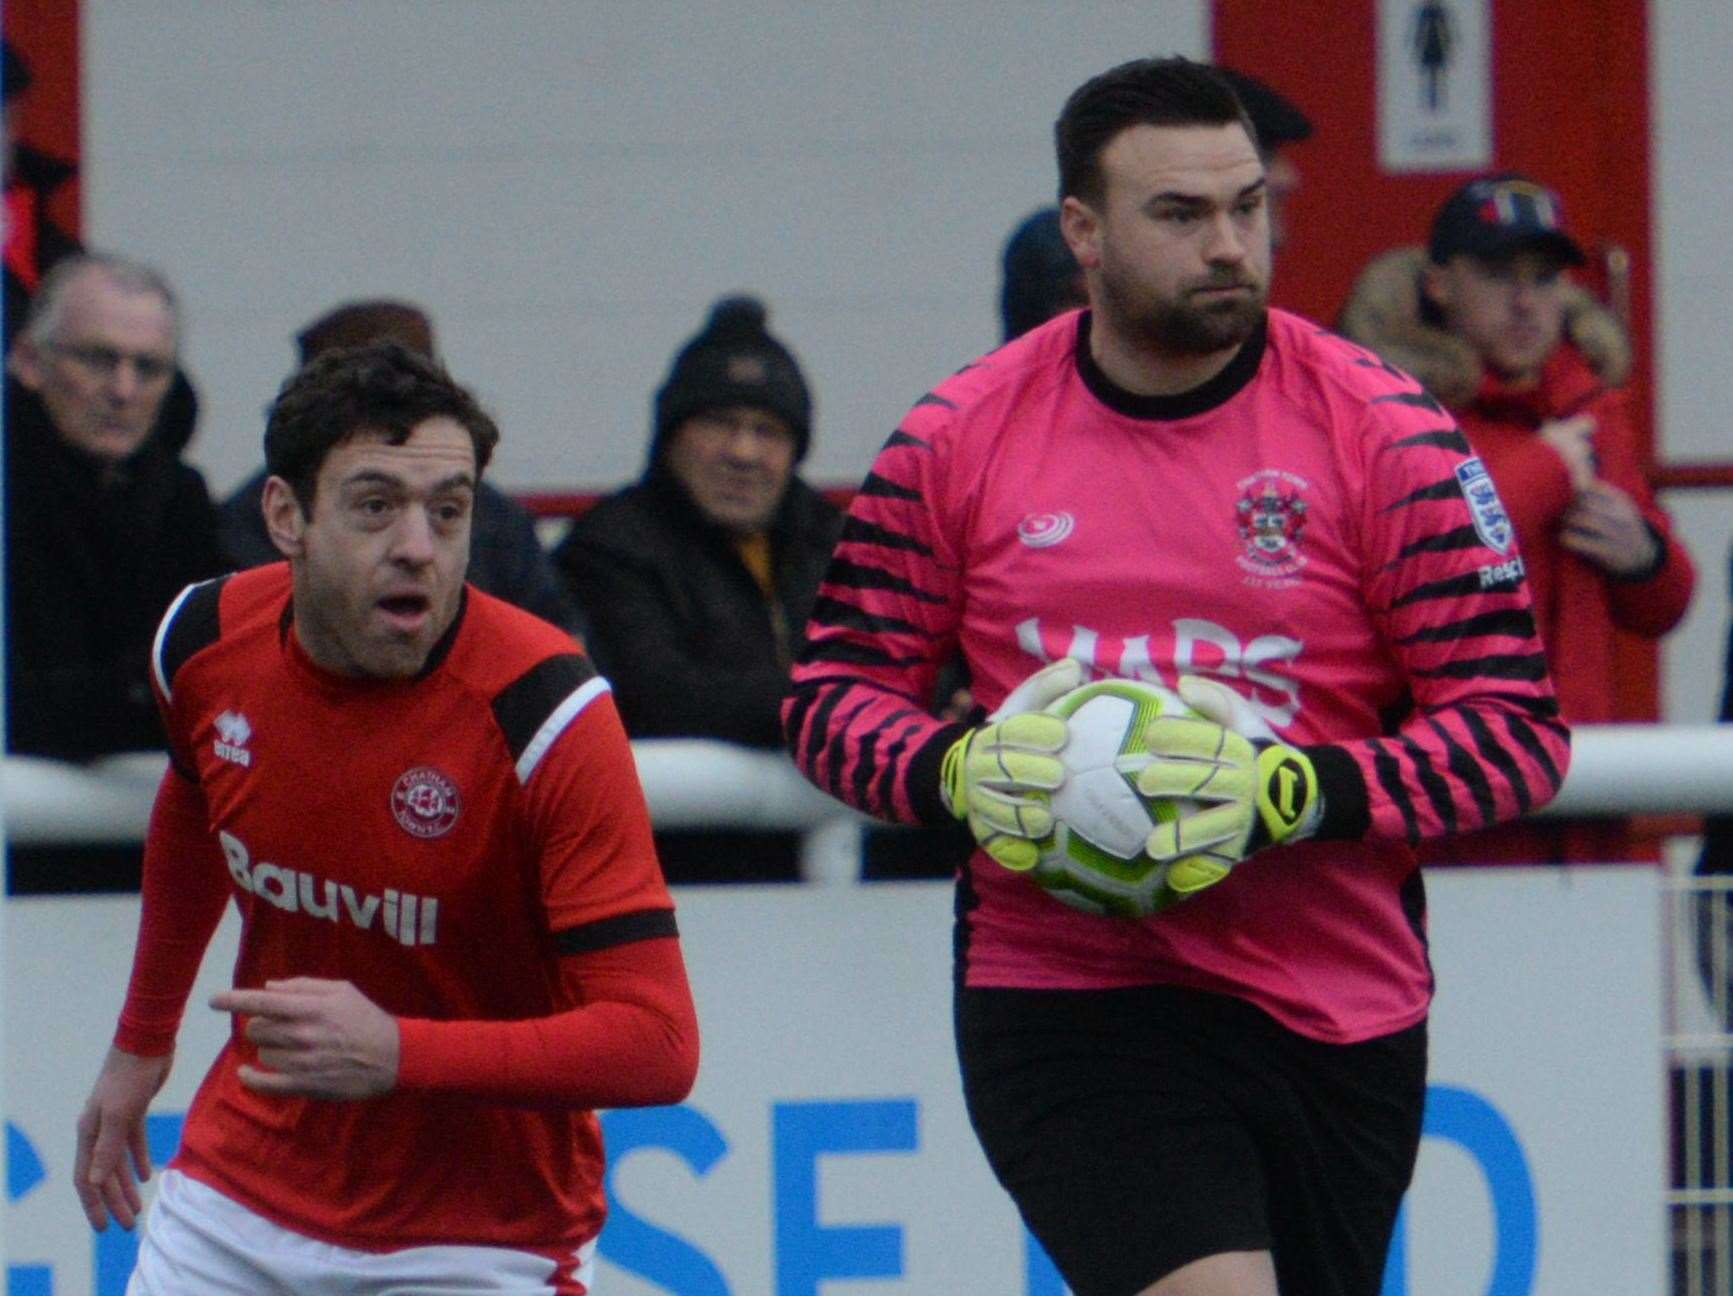 Chatham goalkeeper Dan Ellis played on with a broken leg in their FA Vase tie against Corinthian Picture: Chris Davey